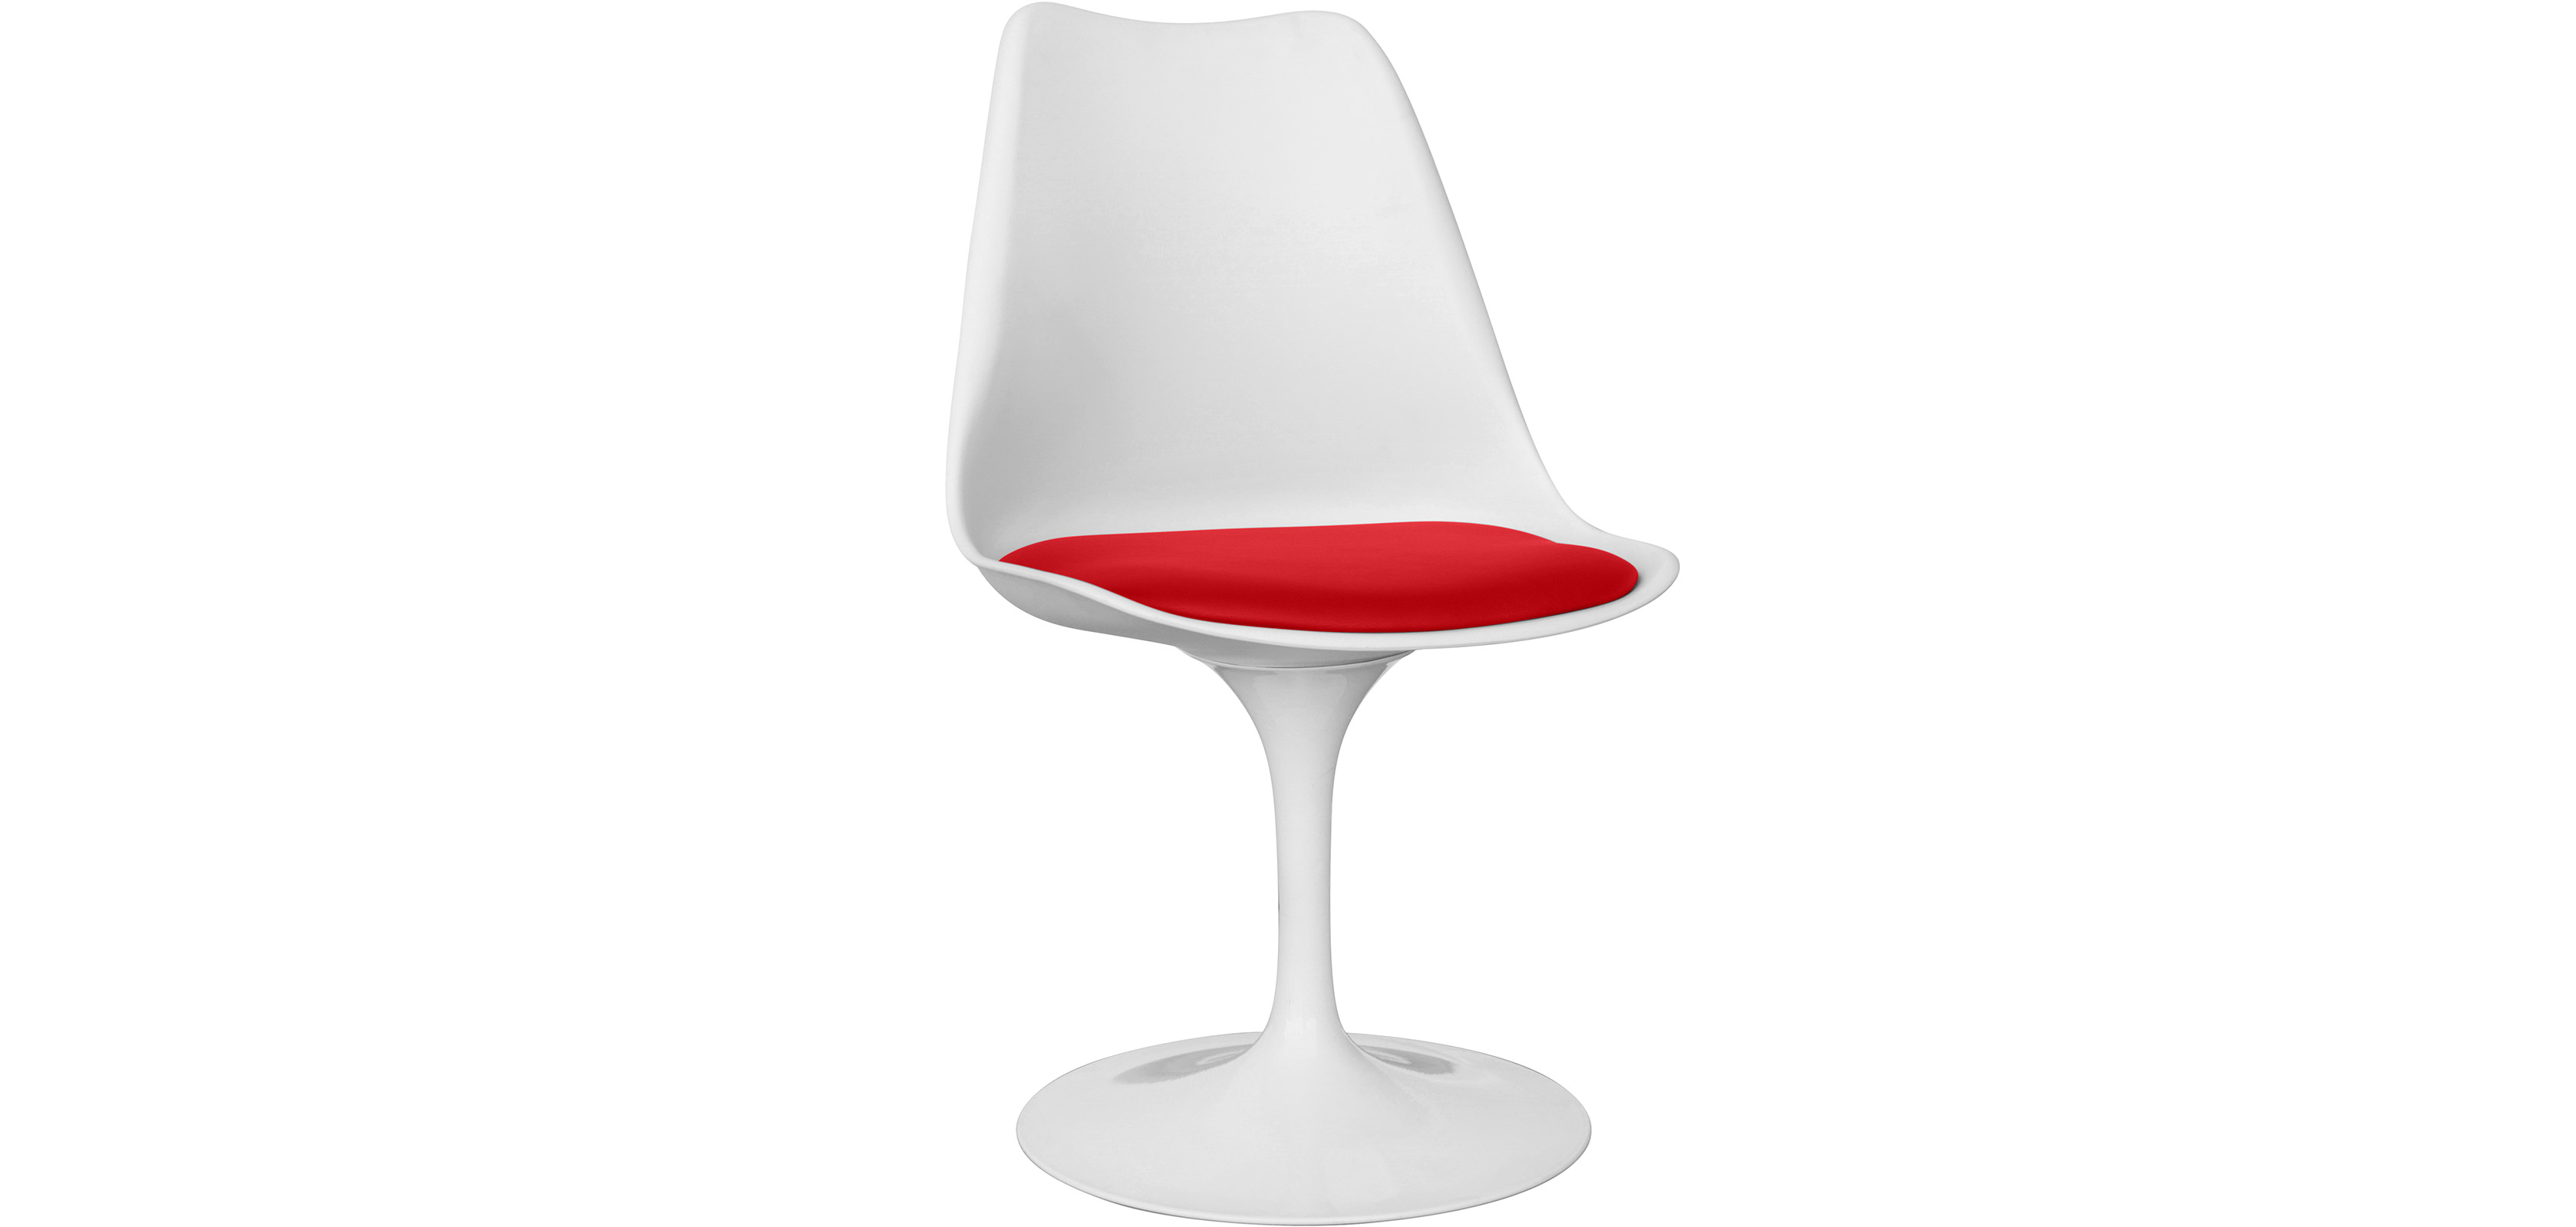 Buy White Tulipa chair with cushion Red 59156 - in the EU